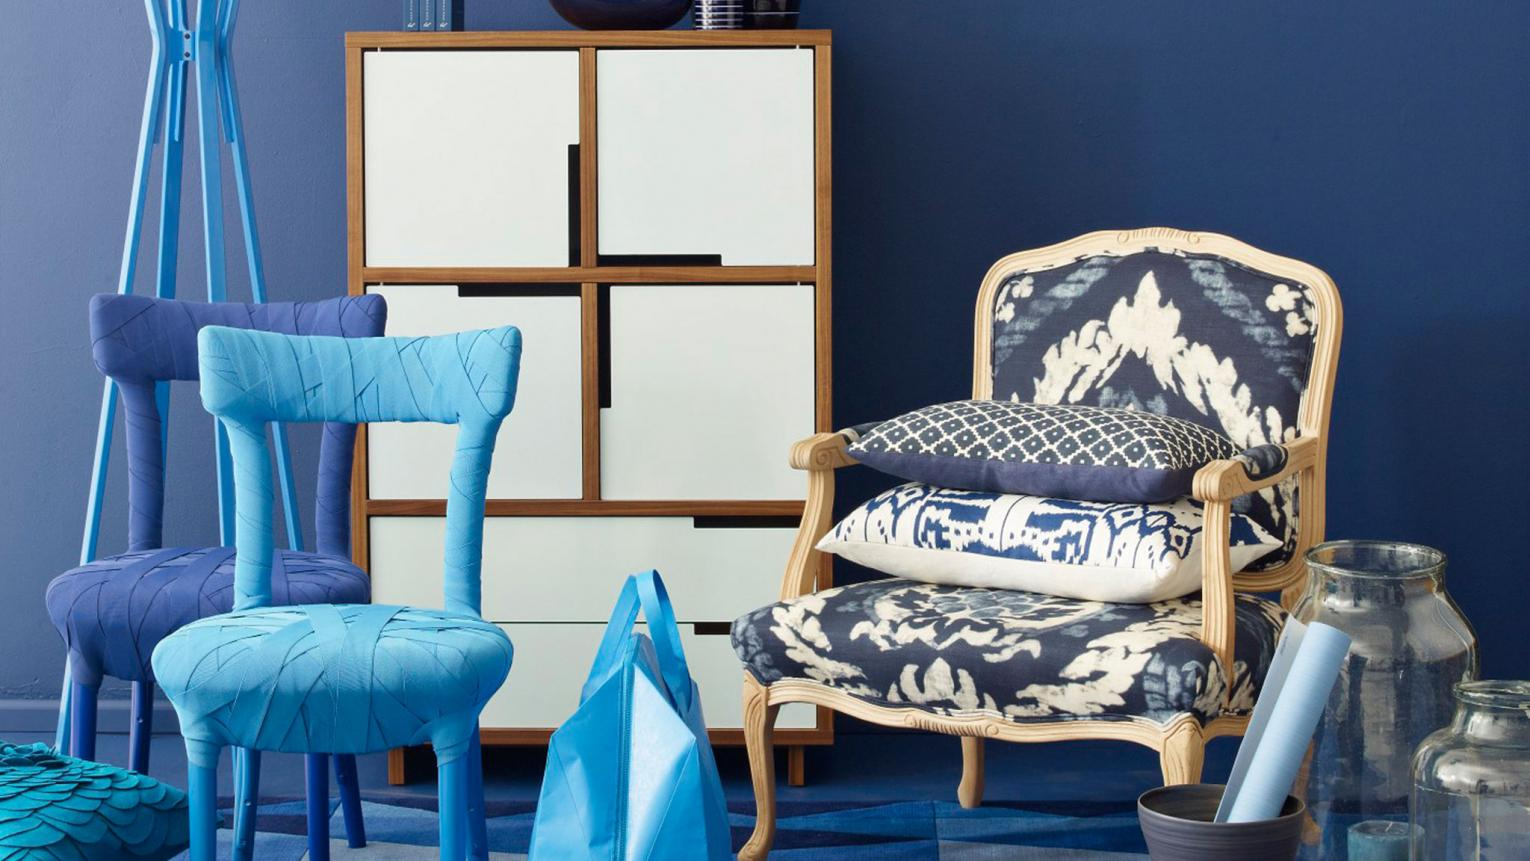 Sapphire blue is said to have many mystical properties. Give your home a rich look with a touch of this dazzling hue.